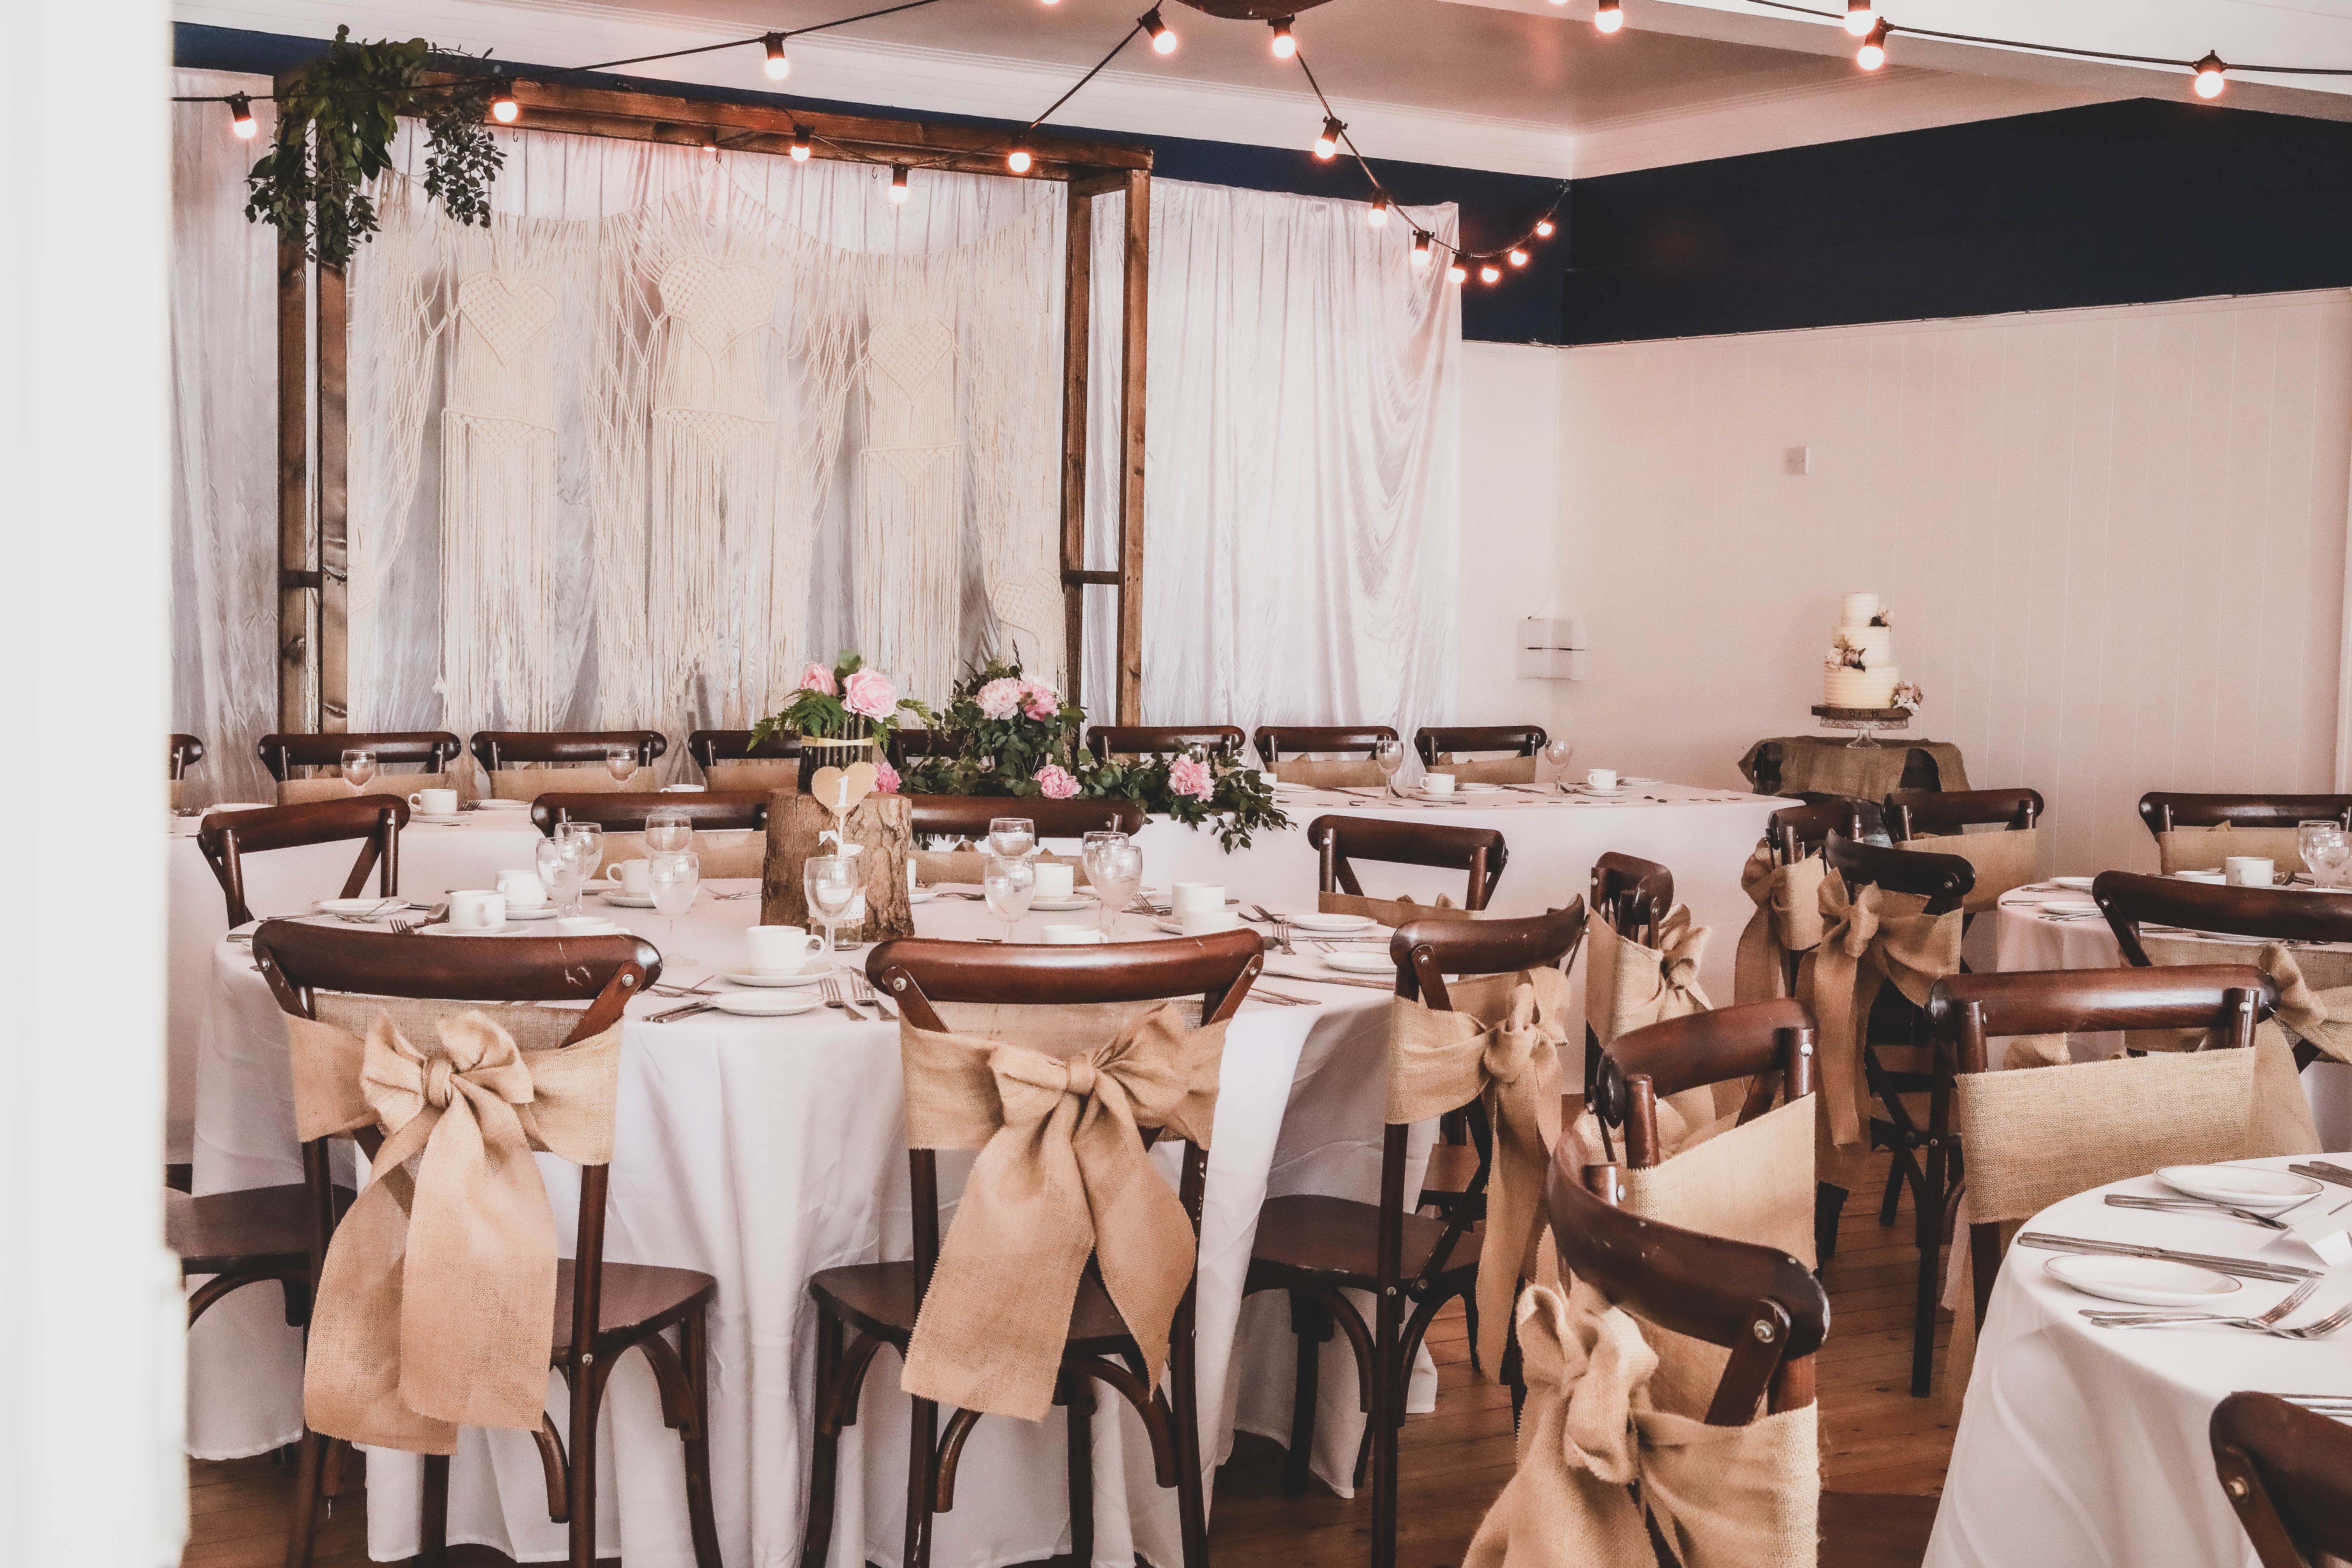 Beautiful Rustic Styling - The Carousel Rooms